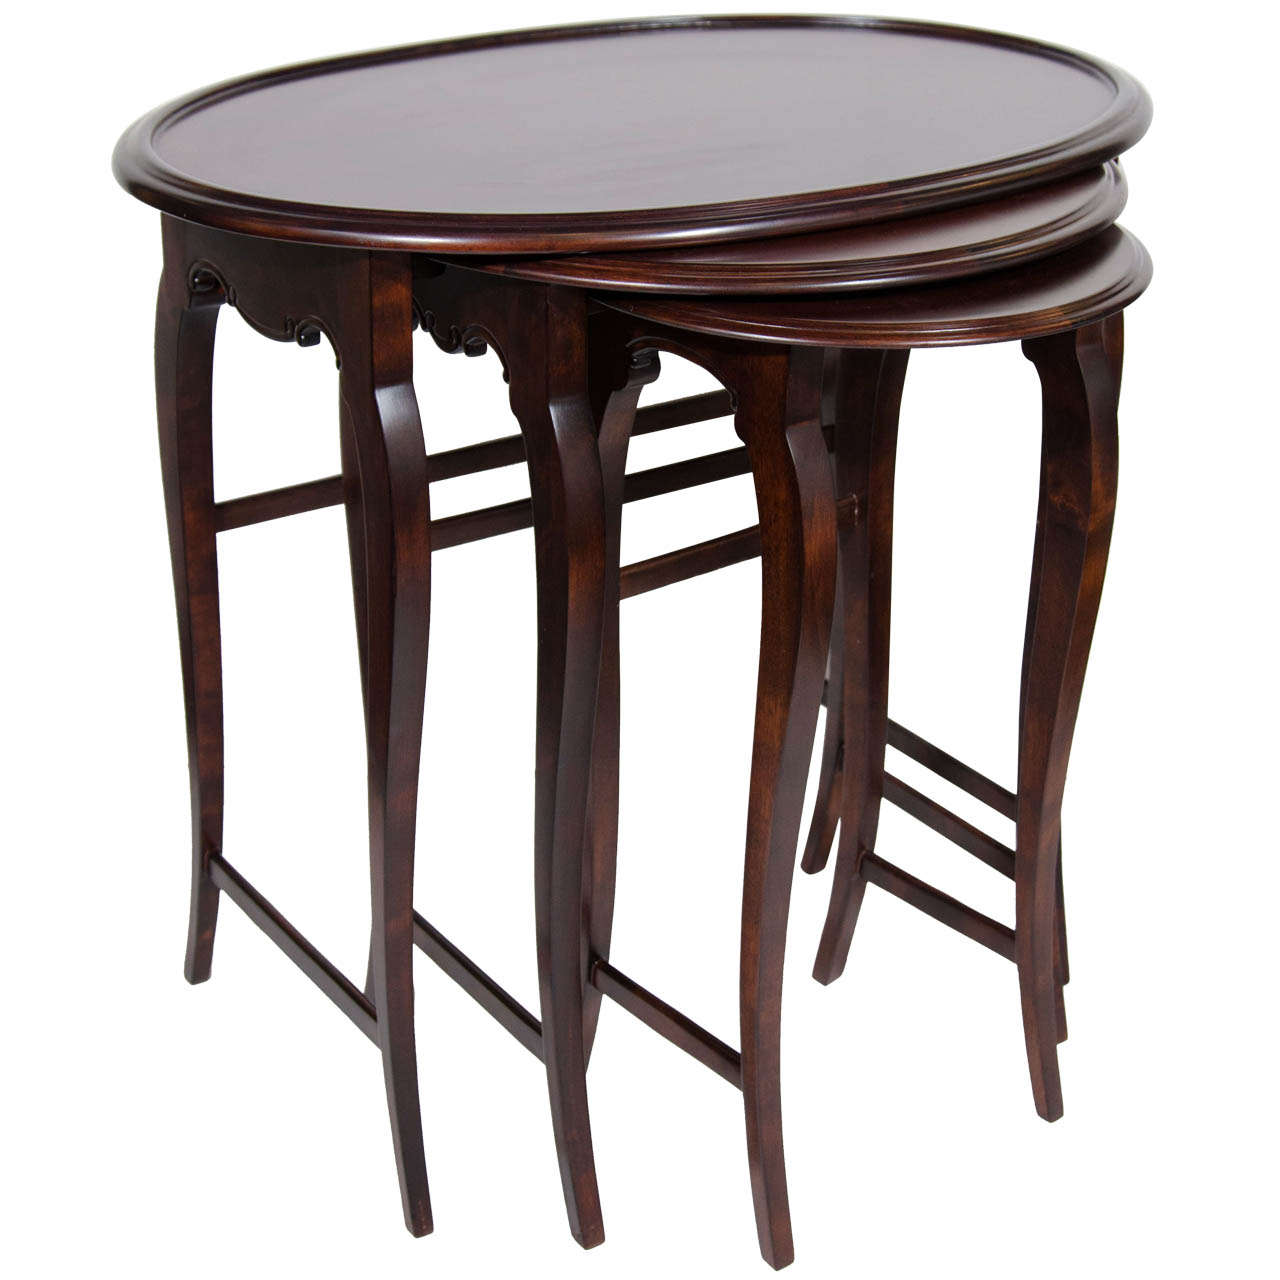 Image of: Round Wood Nesting Tables